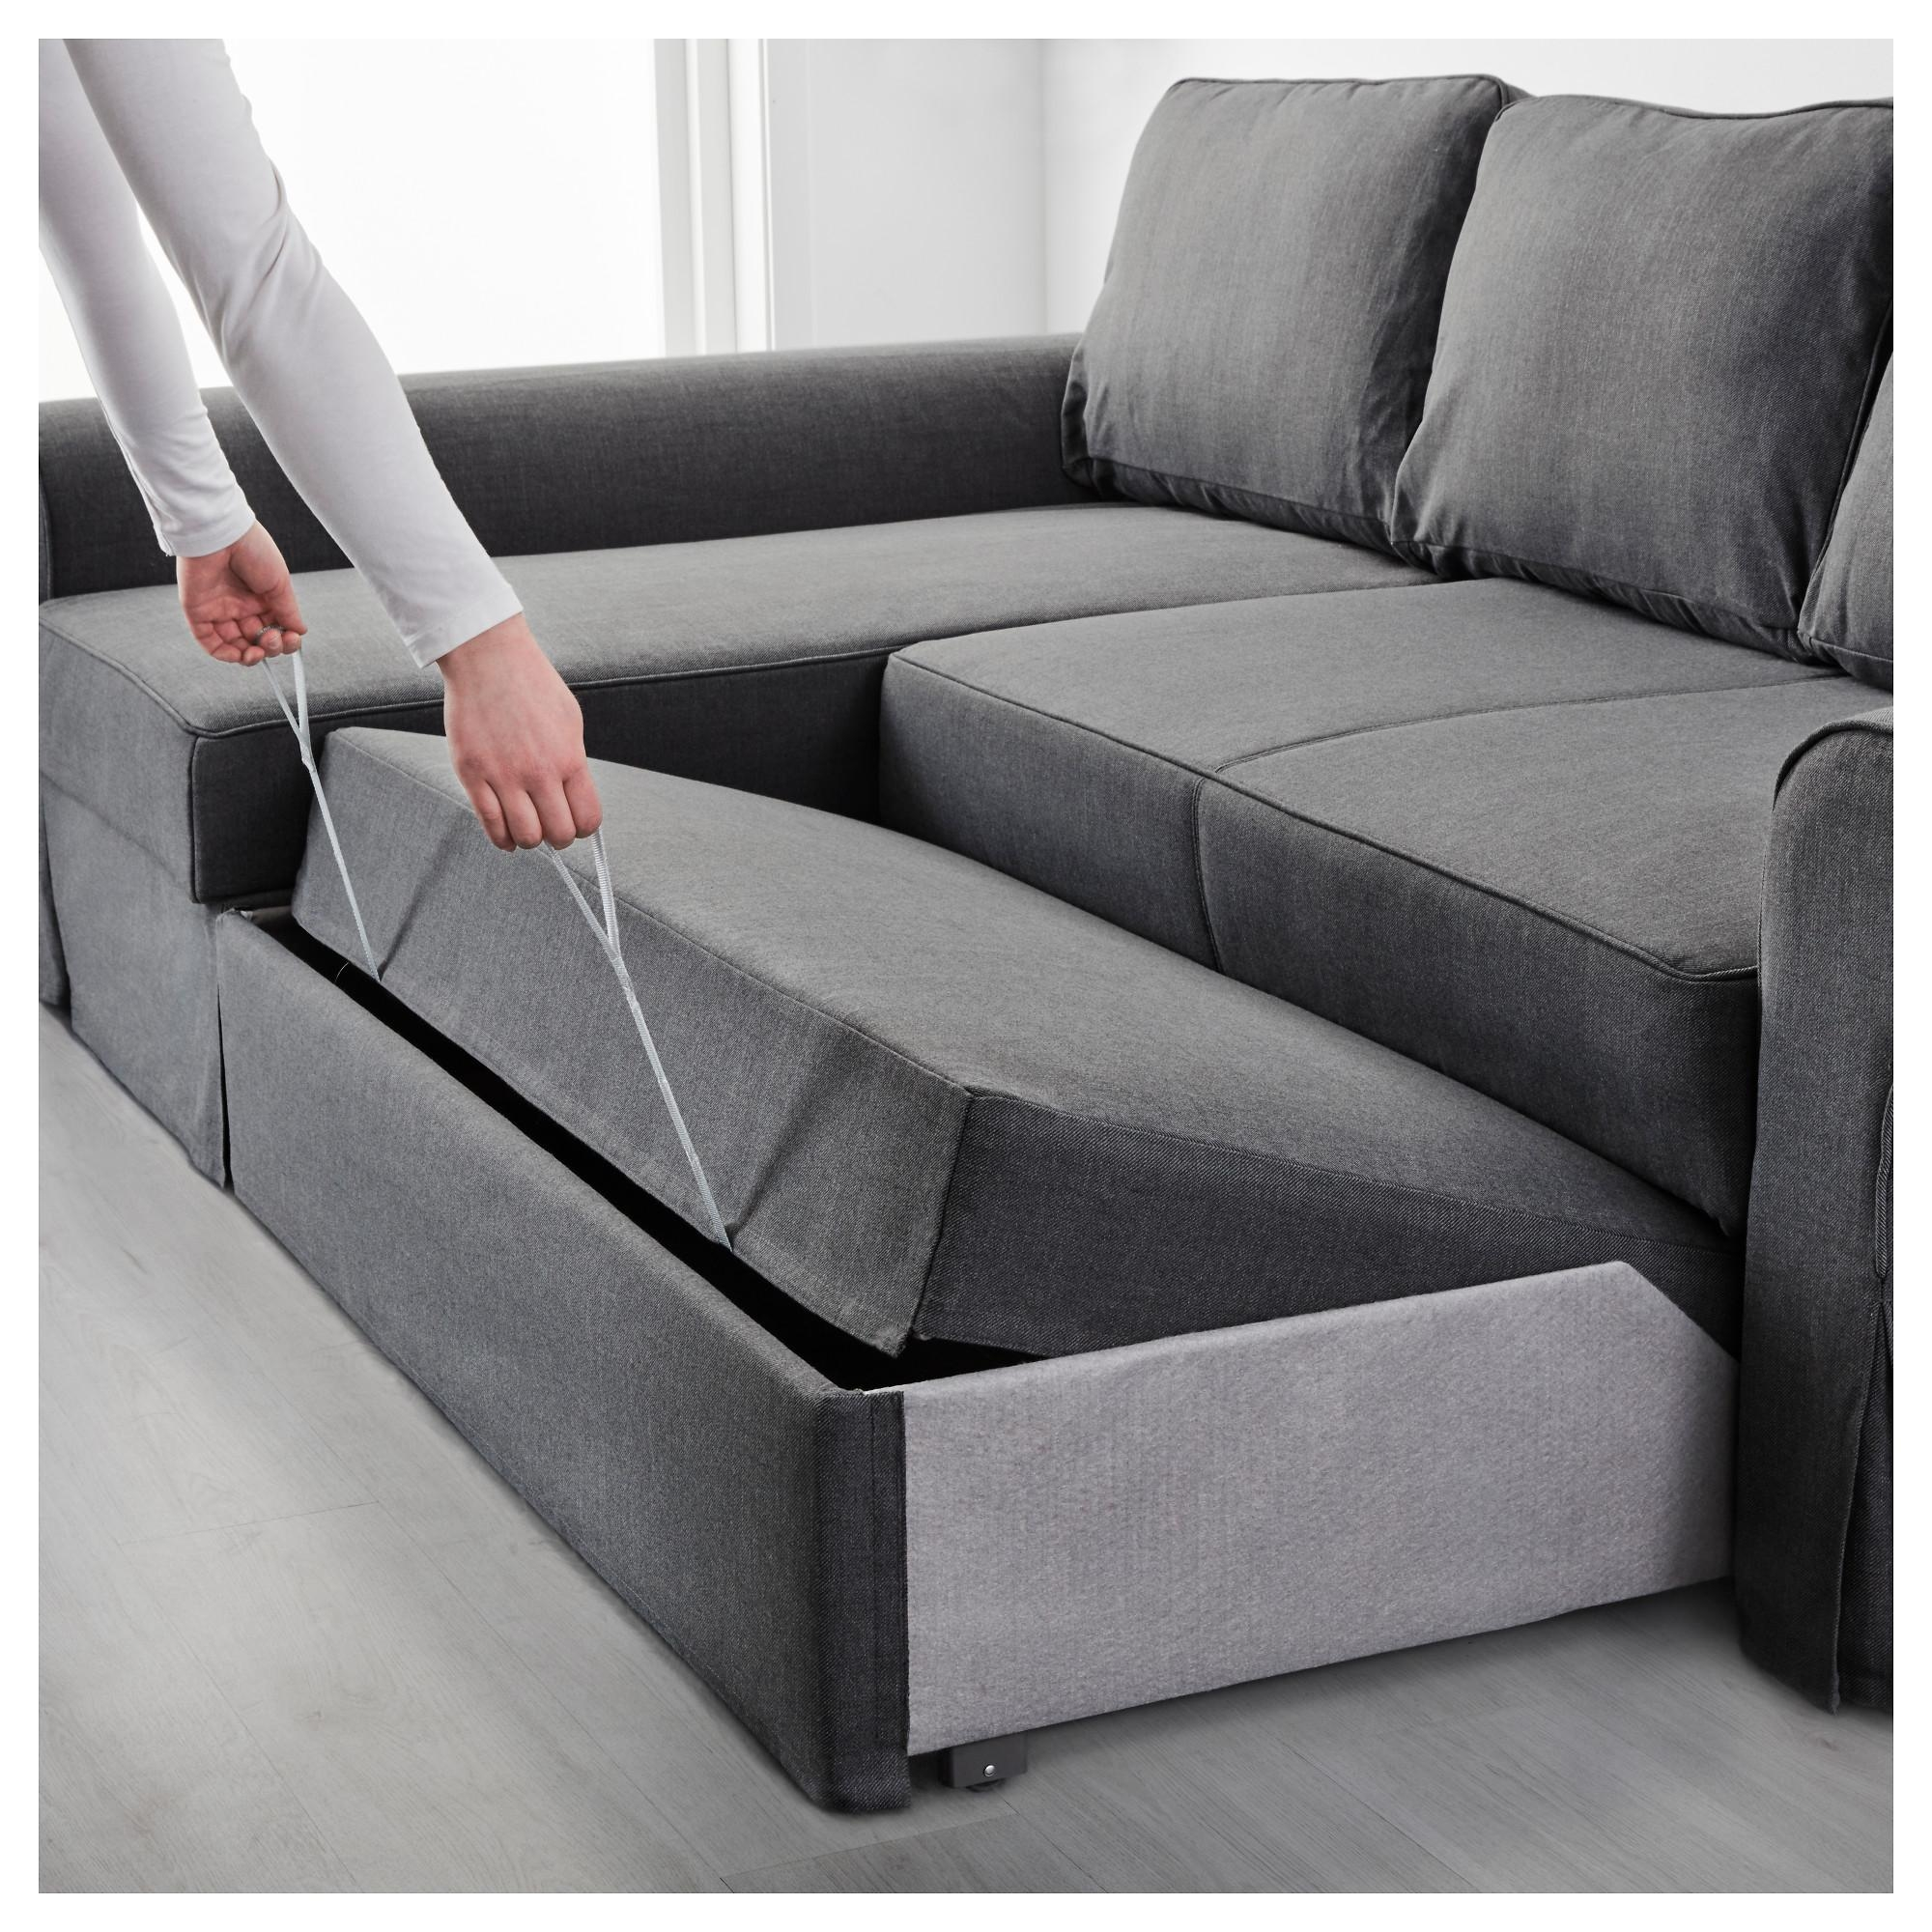 Backabro Sofa Bed With Chaise Longue Nordvalla Dark Grey – Ikea With Sofa Beds With Chaise Lounge (View 20 of 20)